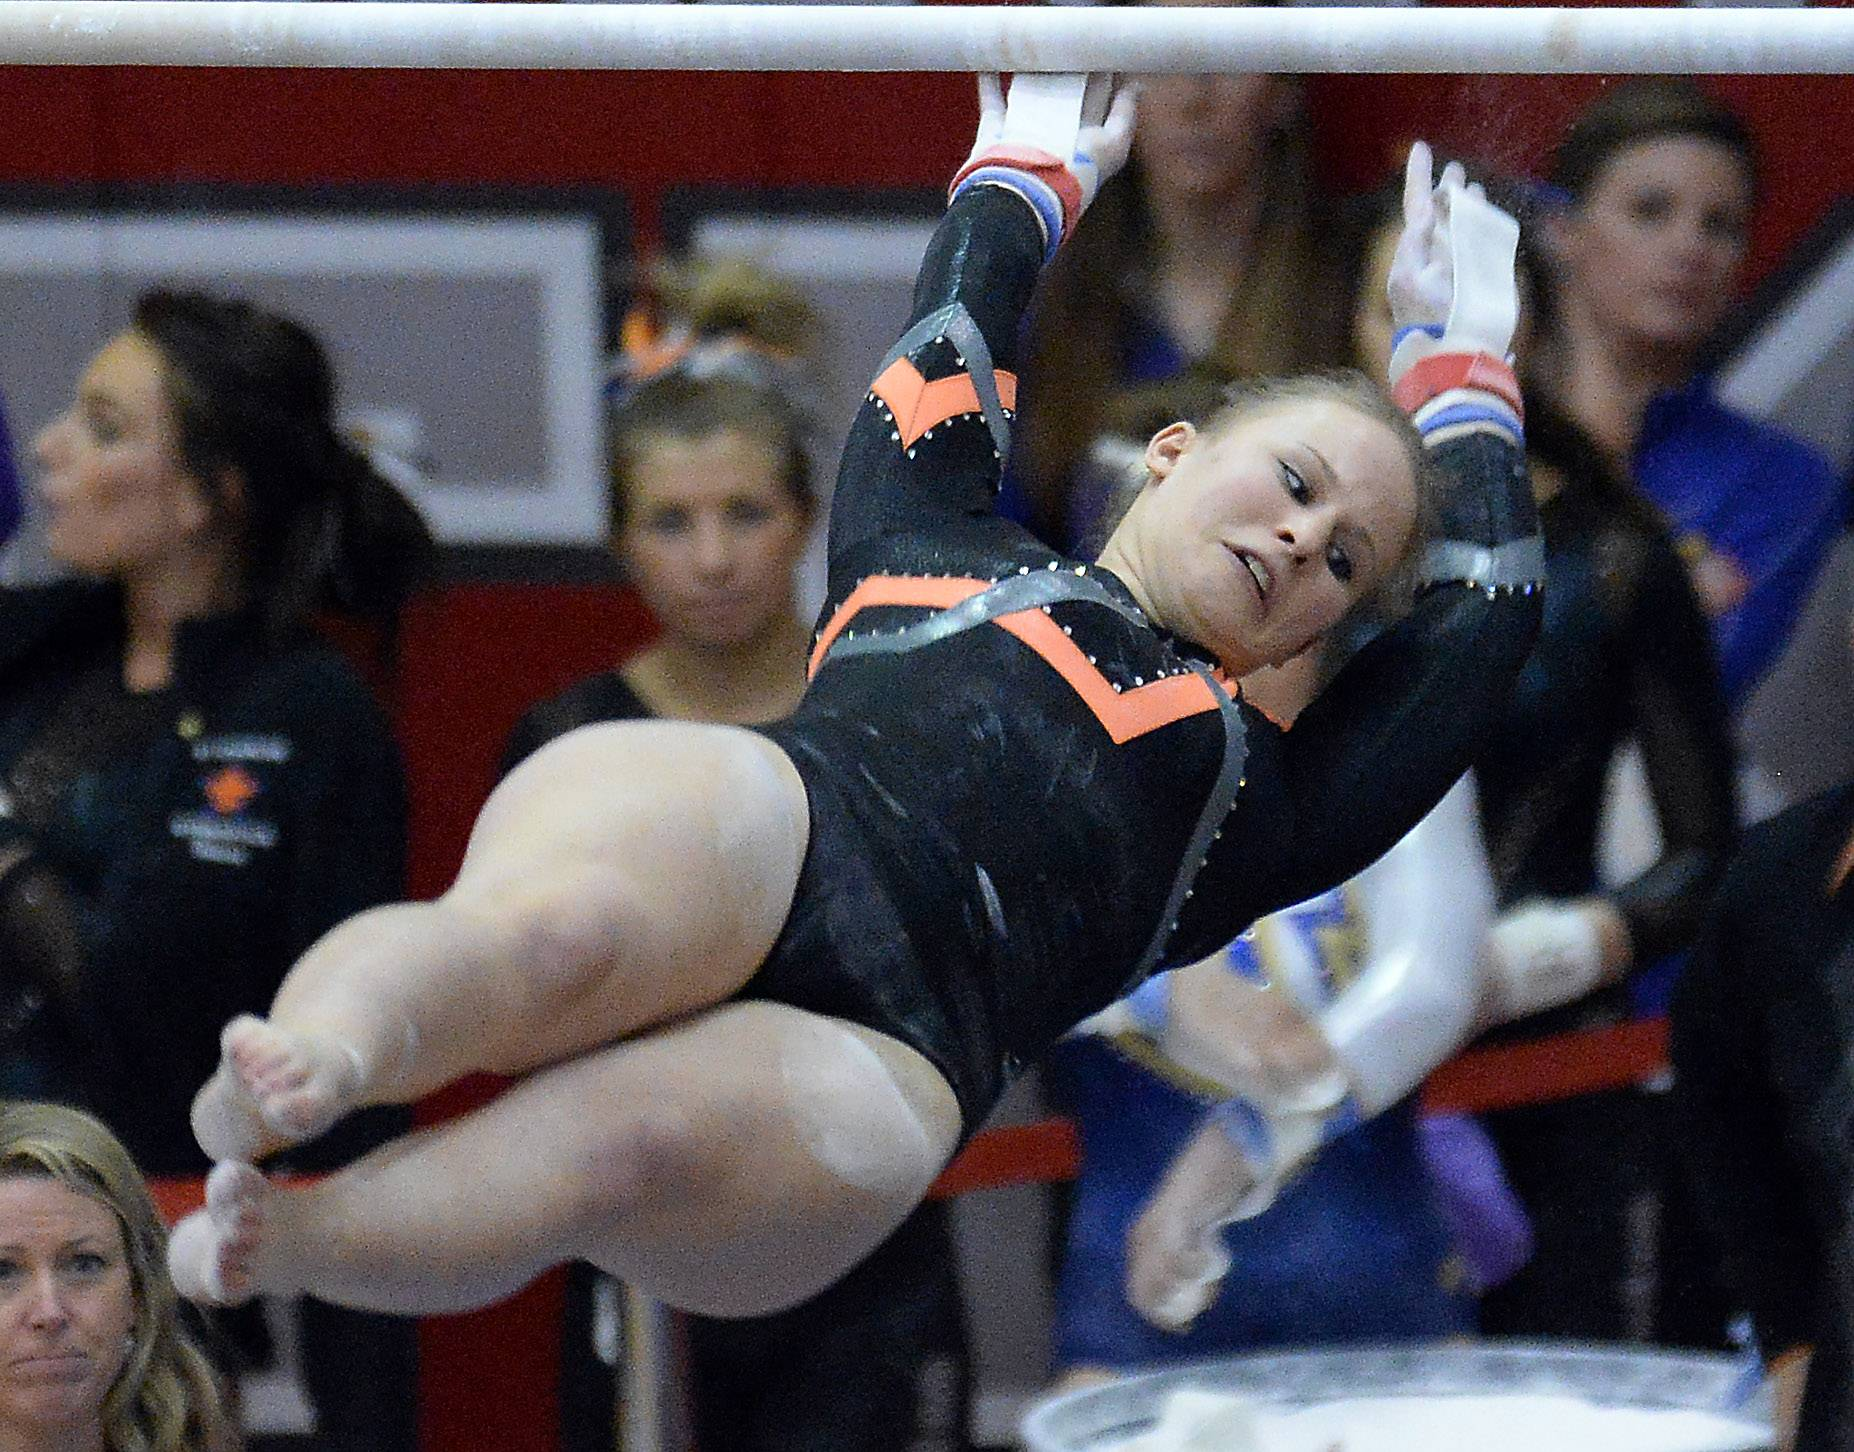 Mariah Lee of Libertyville competes on the uneven parallel bars in the girls gymnastics state finals in Palatine on Friday.